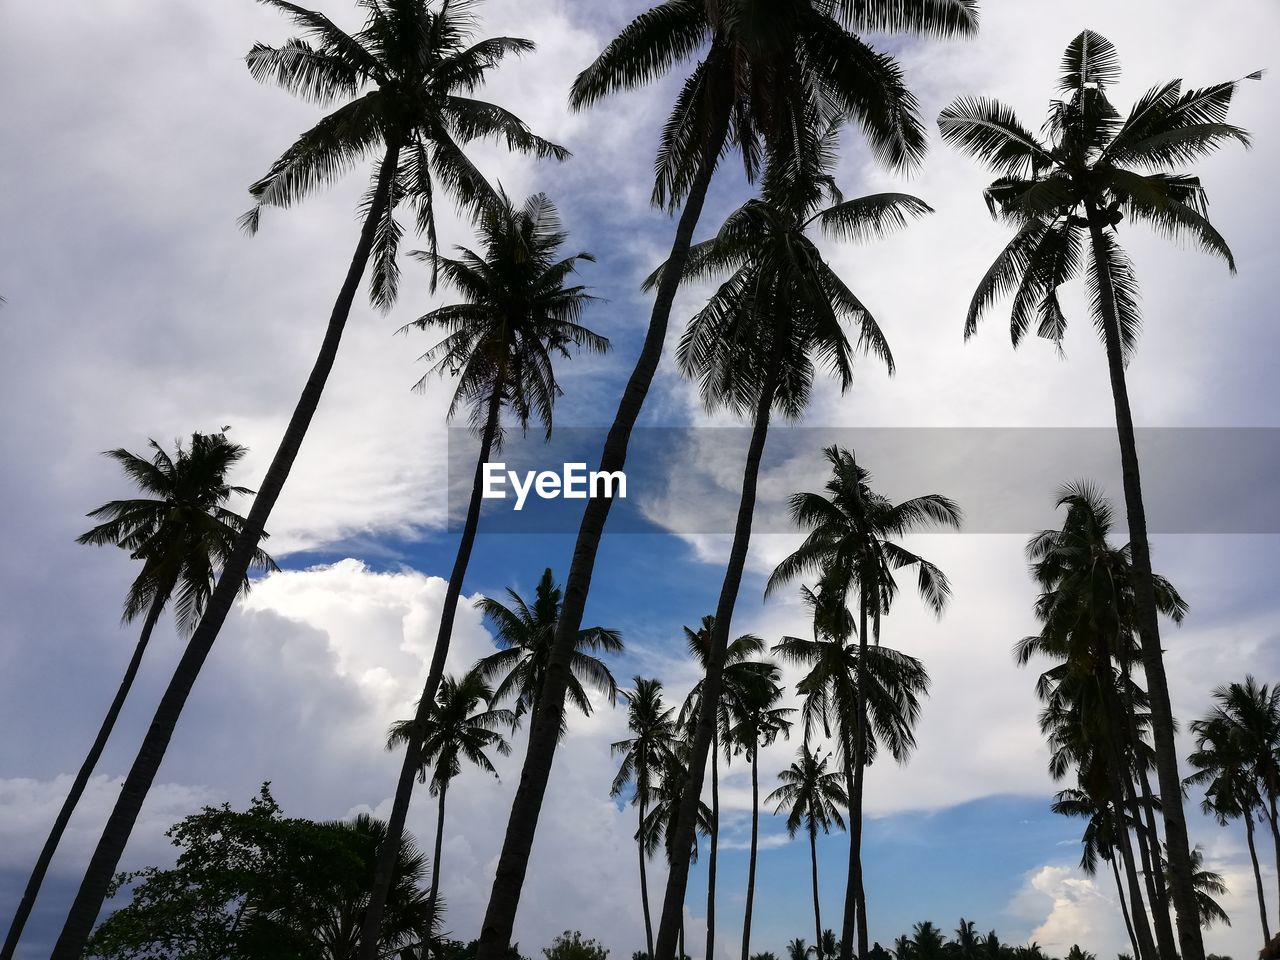 sky, tree, palm tree, tropical climate, plant, cloud - sky, beauty in nature, growth, low angle view, scenics - nature, silhouette, coconut palm tree, tranquility, tall - high, nature, tranquil scene, tree trunk, no people, trunk, outdoors, tropical tree, palm leaf